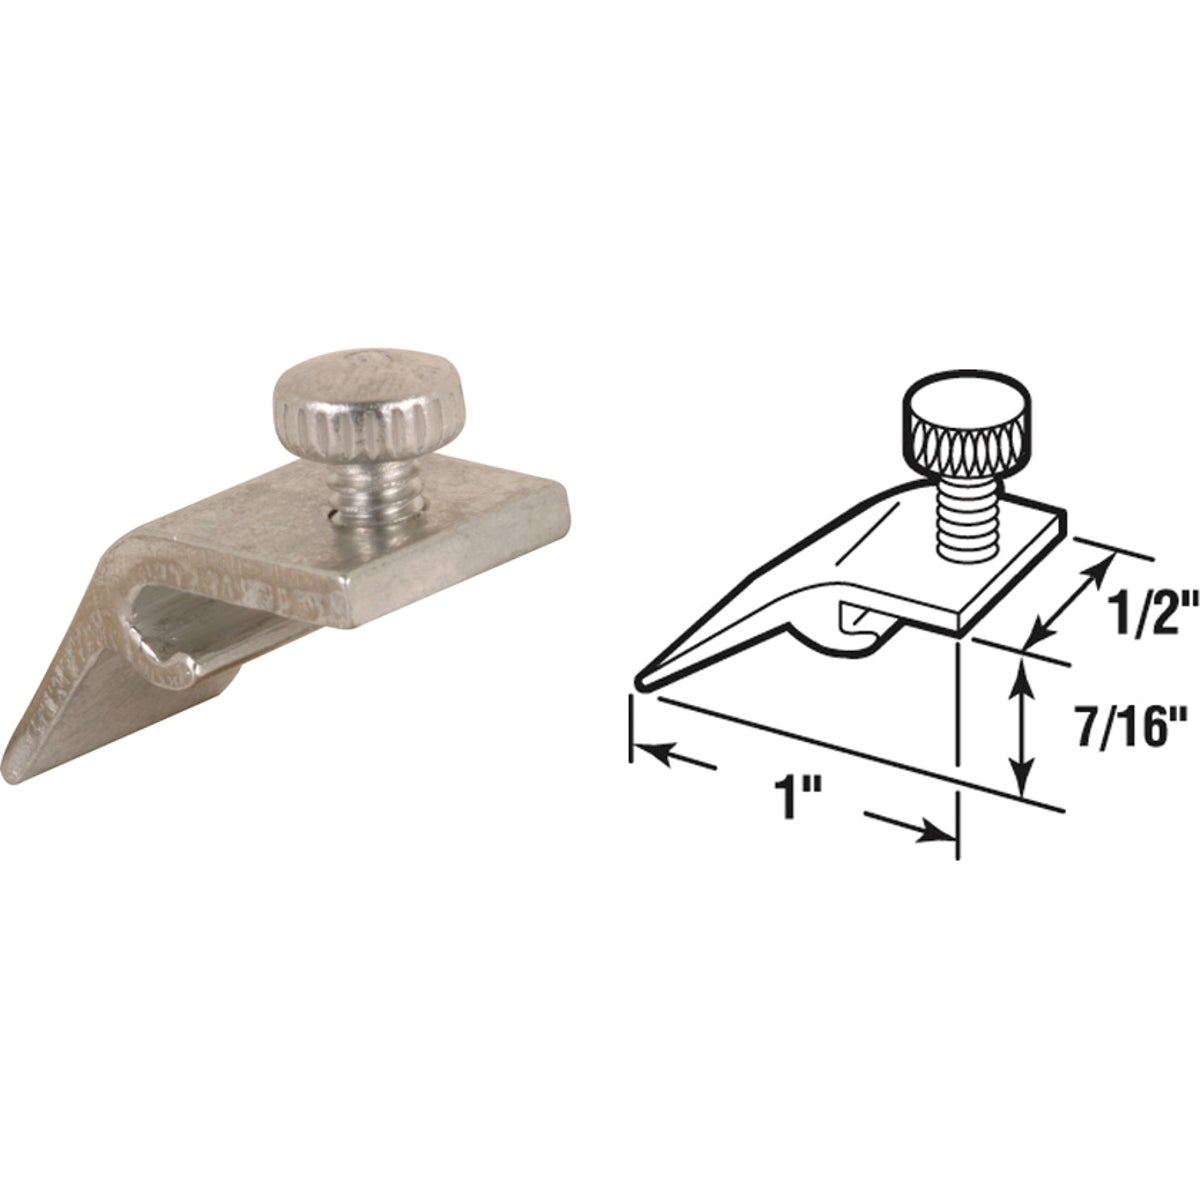 STORM WINDOW PANEL CLIPS - 181058 by Prime Line Products